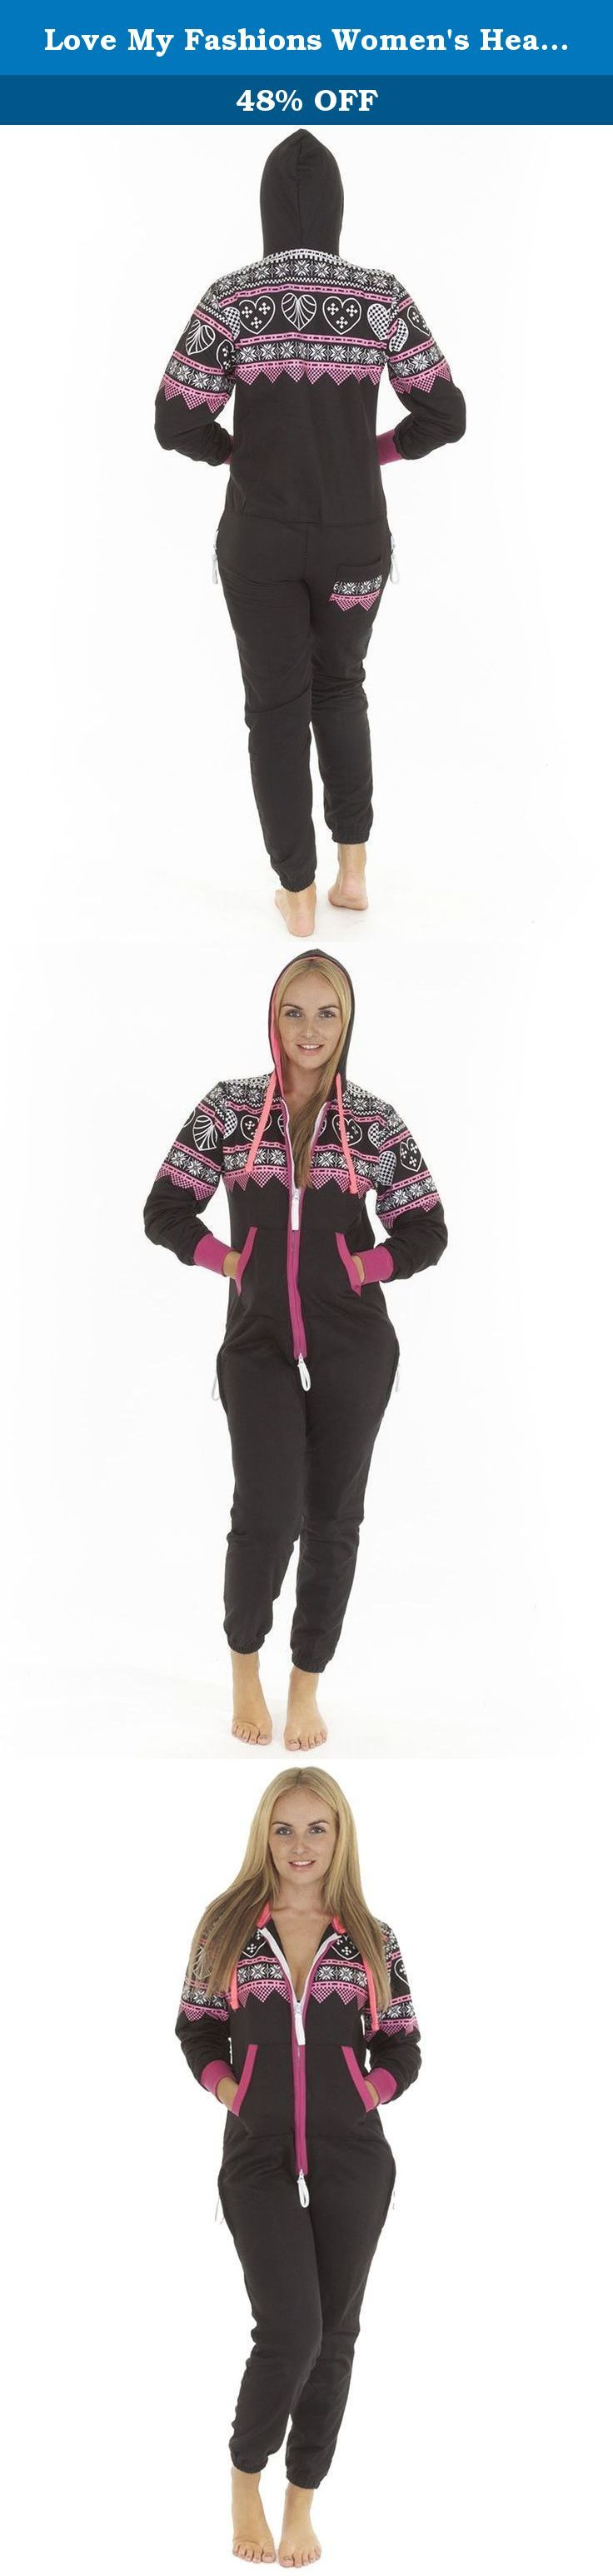 Love My Fashions Women's Heart Aztec Print Onesie Hoodie Fleece Jumpsuit Large Black. A must have item for this autumn/winter. This unisex aztec onesie with heart design is perfect for those lazy days or after a long day at work. The onesie has a double zip fastening, zips to the top of the hood. This hooded onesie has two front pockets, zipped pocket on each hip with elasticated ribbed cuffs. Made with 320 gsm fleece to ensure good quality and comfort. Colours: Black, Charcoal, Grey…